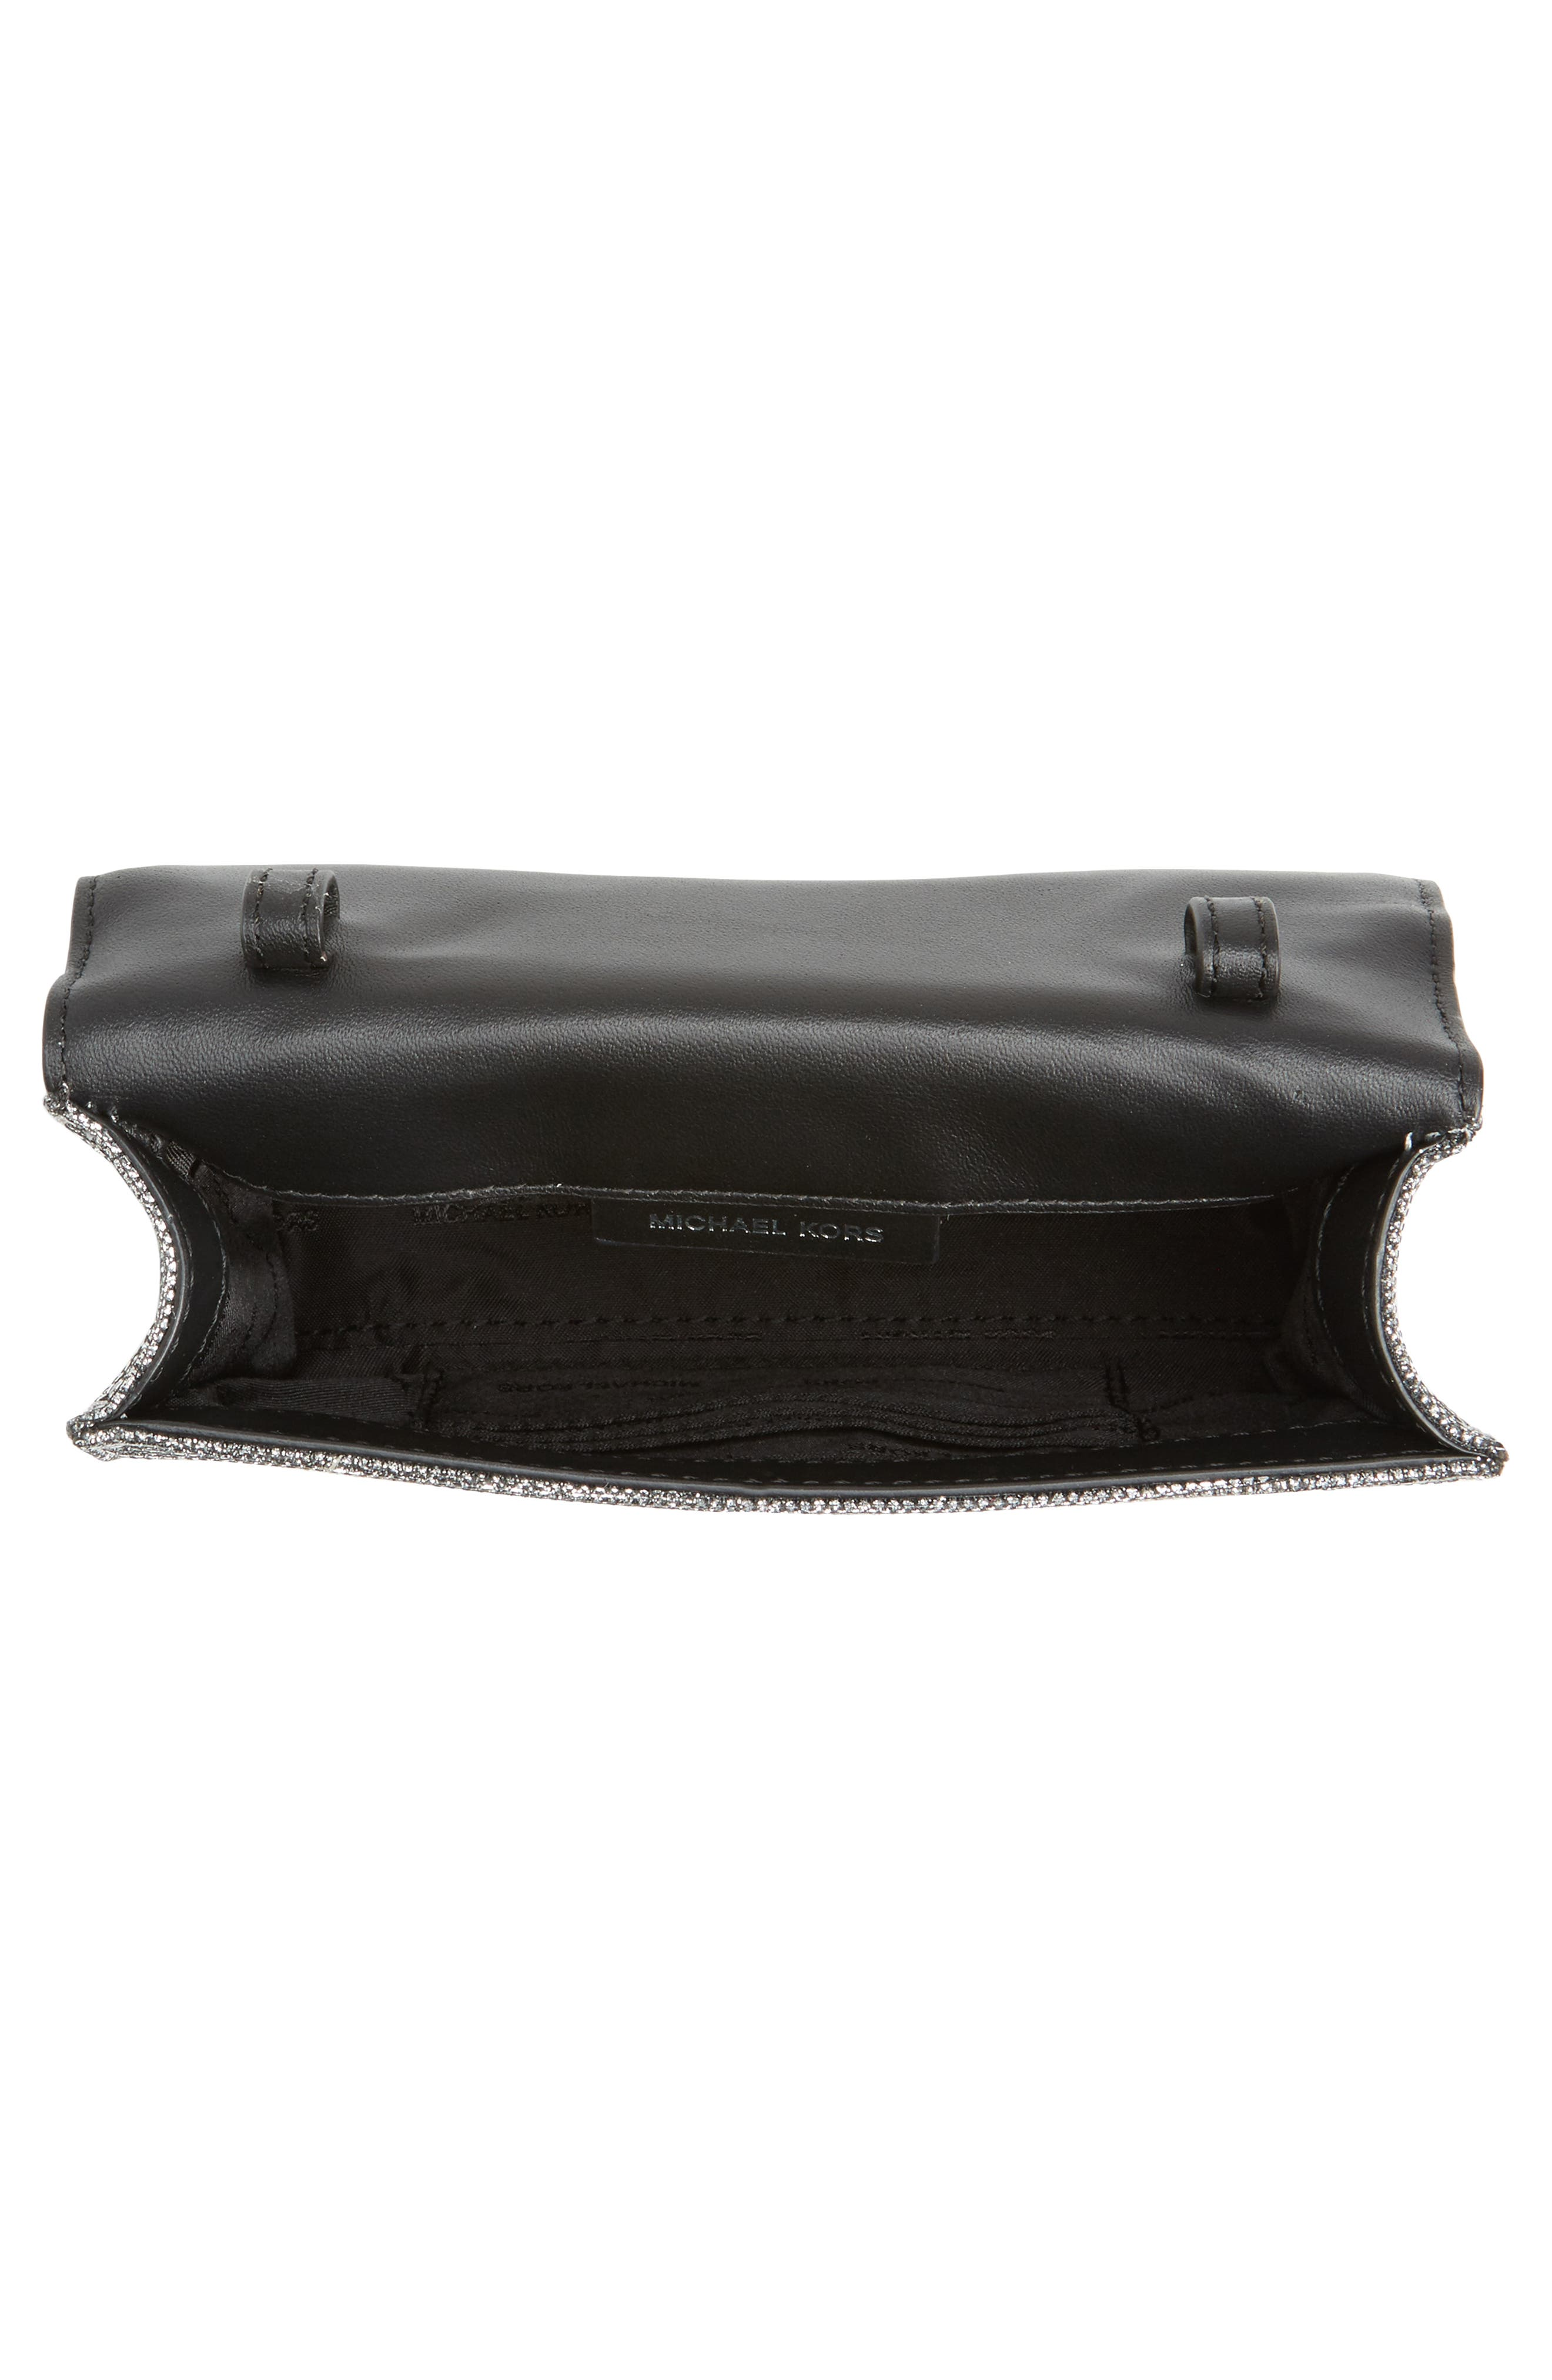 Medium Ruby Convertible Leather Clutch,                             Alternate thumbnail 4, color,                             Black/ Silver